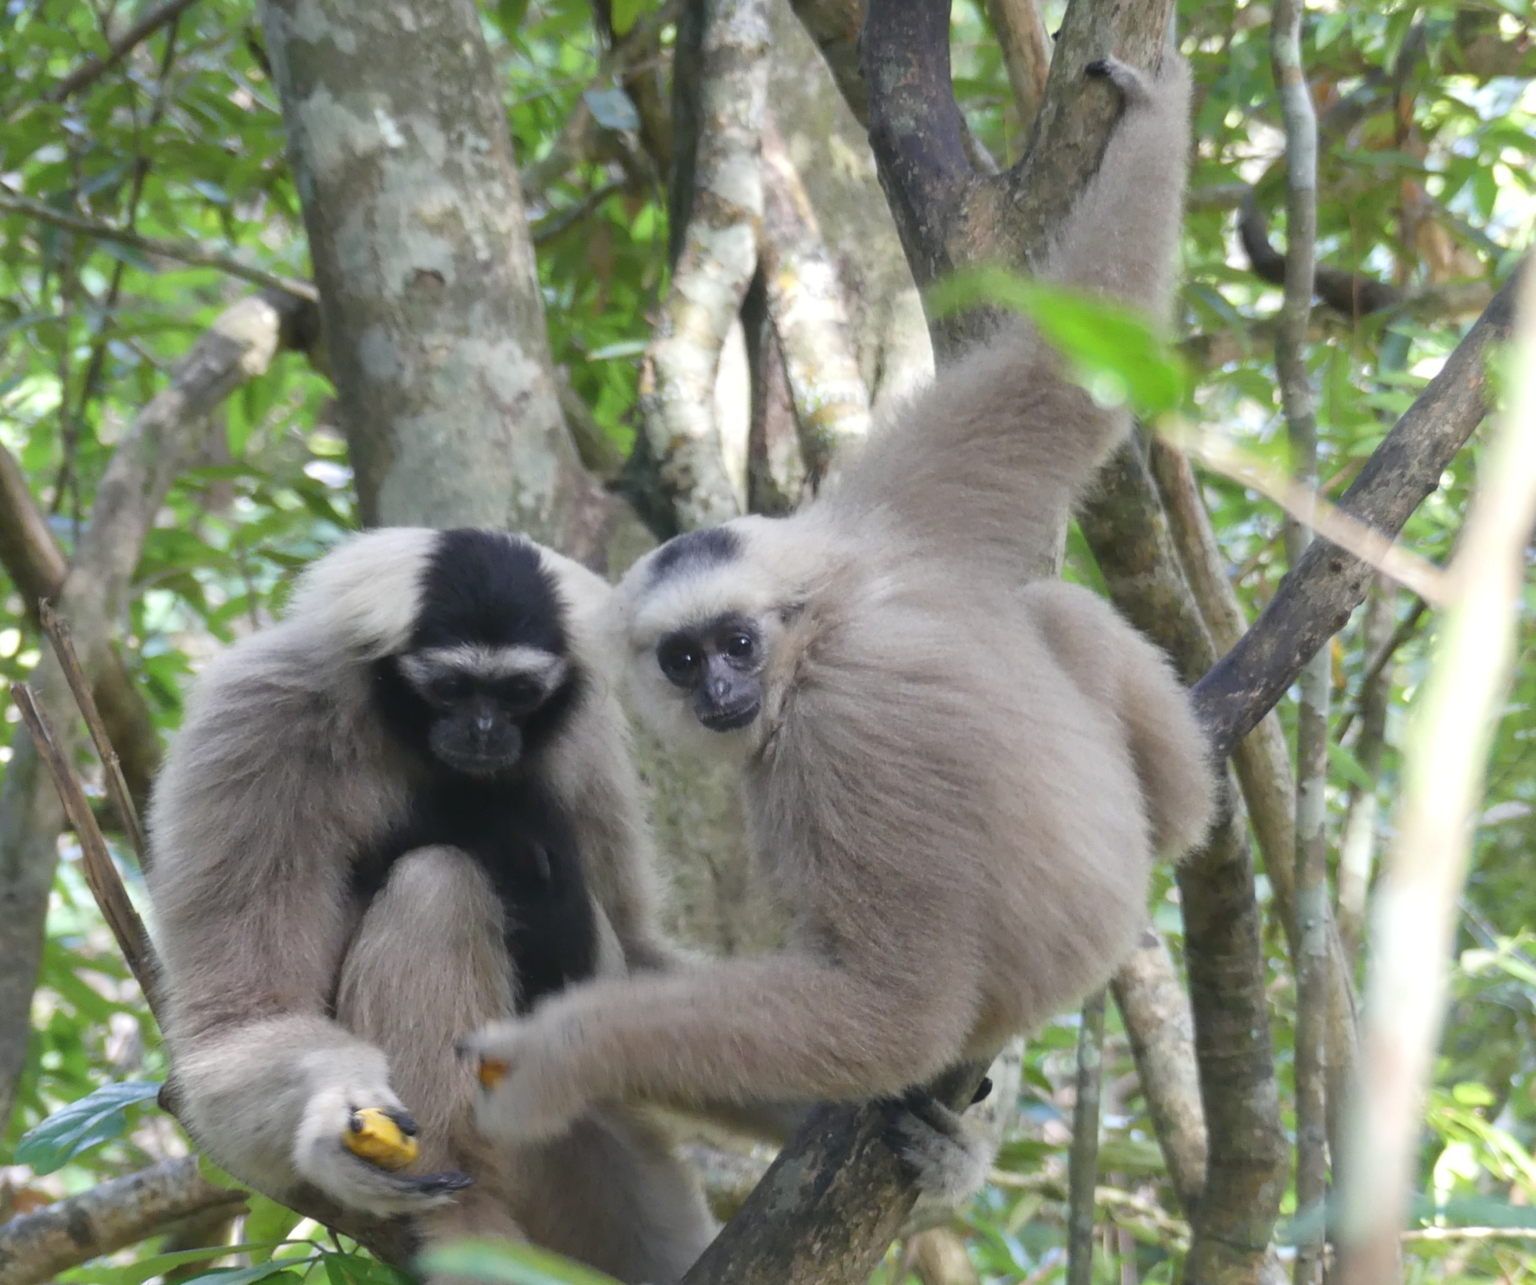 Primate Pileated Gibbon pair Angkor Wat landscape release program Wildlife Alliance Apsara Authority Forestry Administration Cambodia